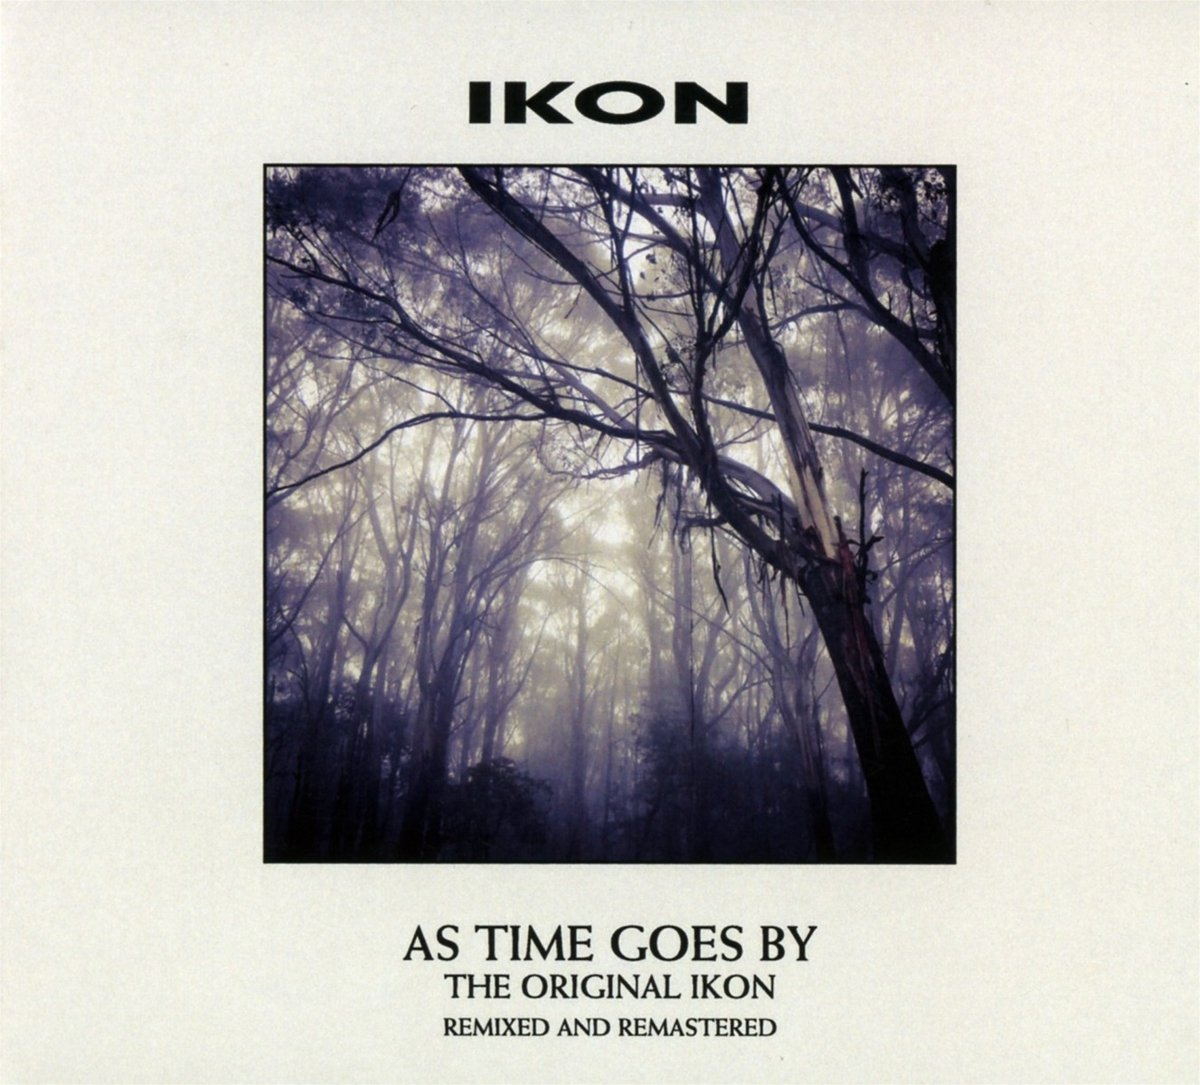 Ikon - As Time Goes By The Original Ikon Remixed And Remastered (2018) [FLAC] Download